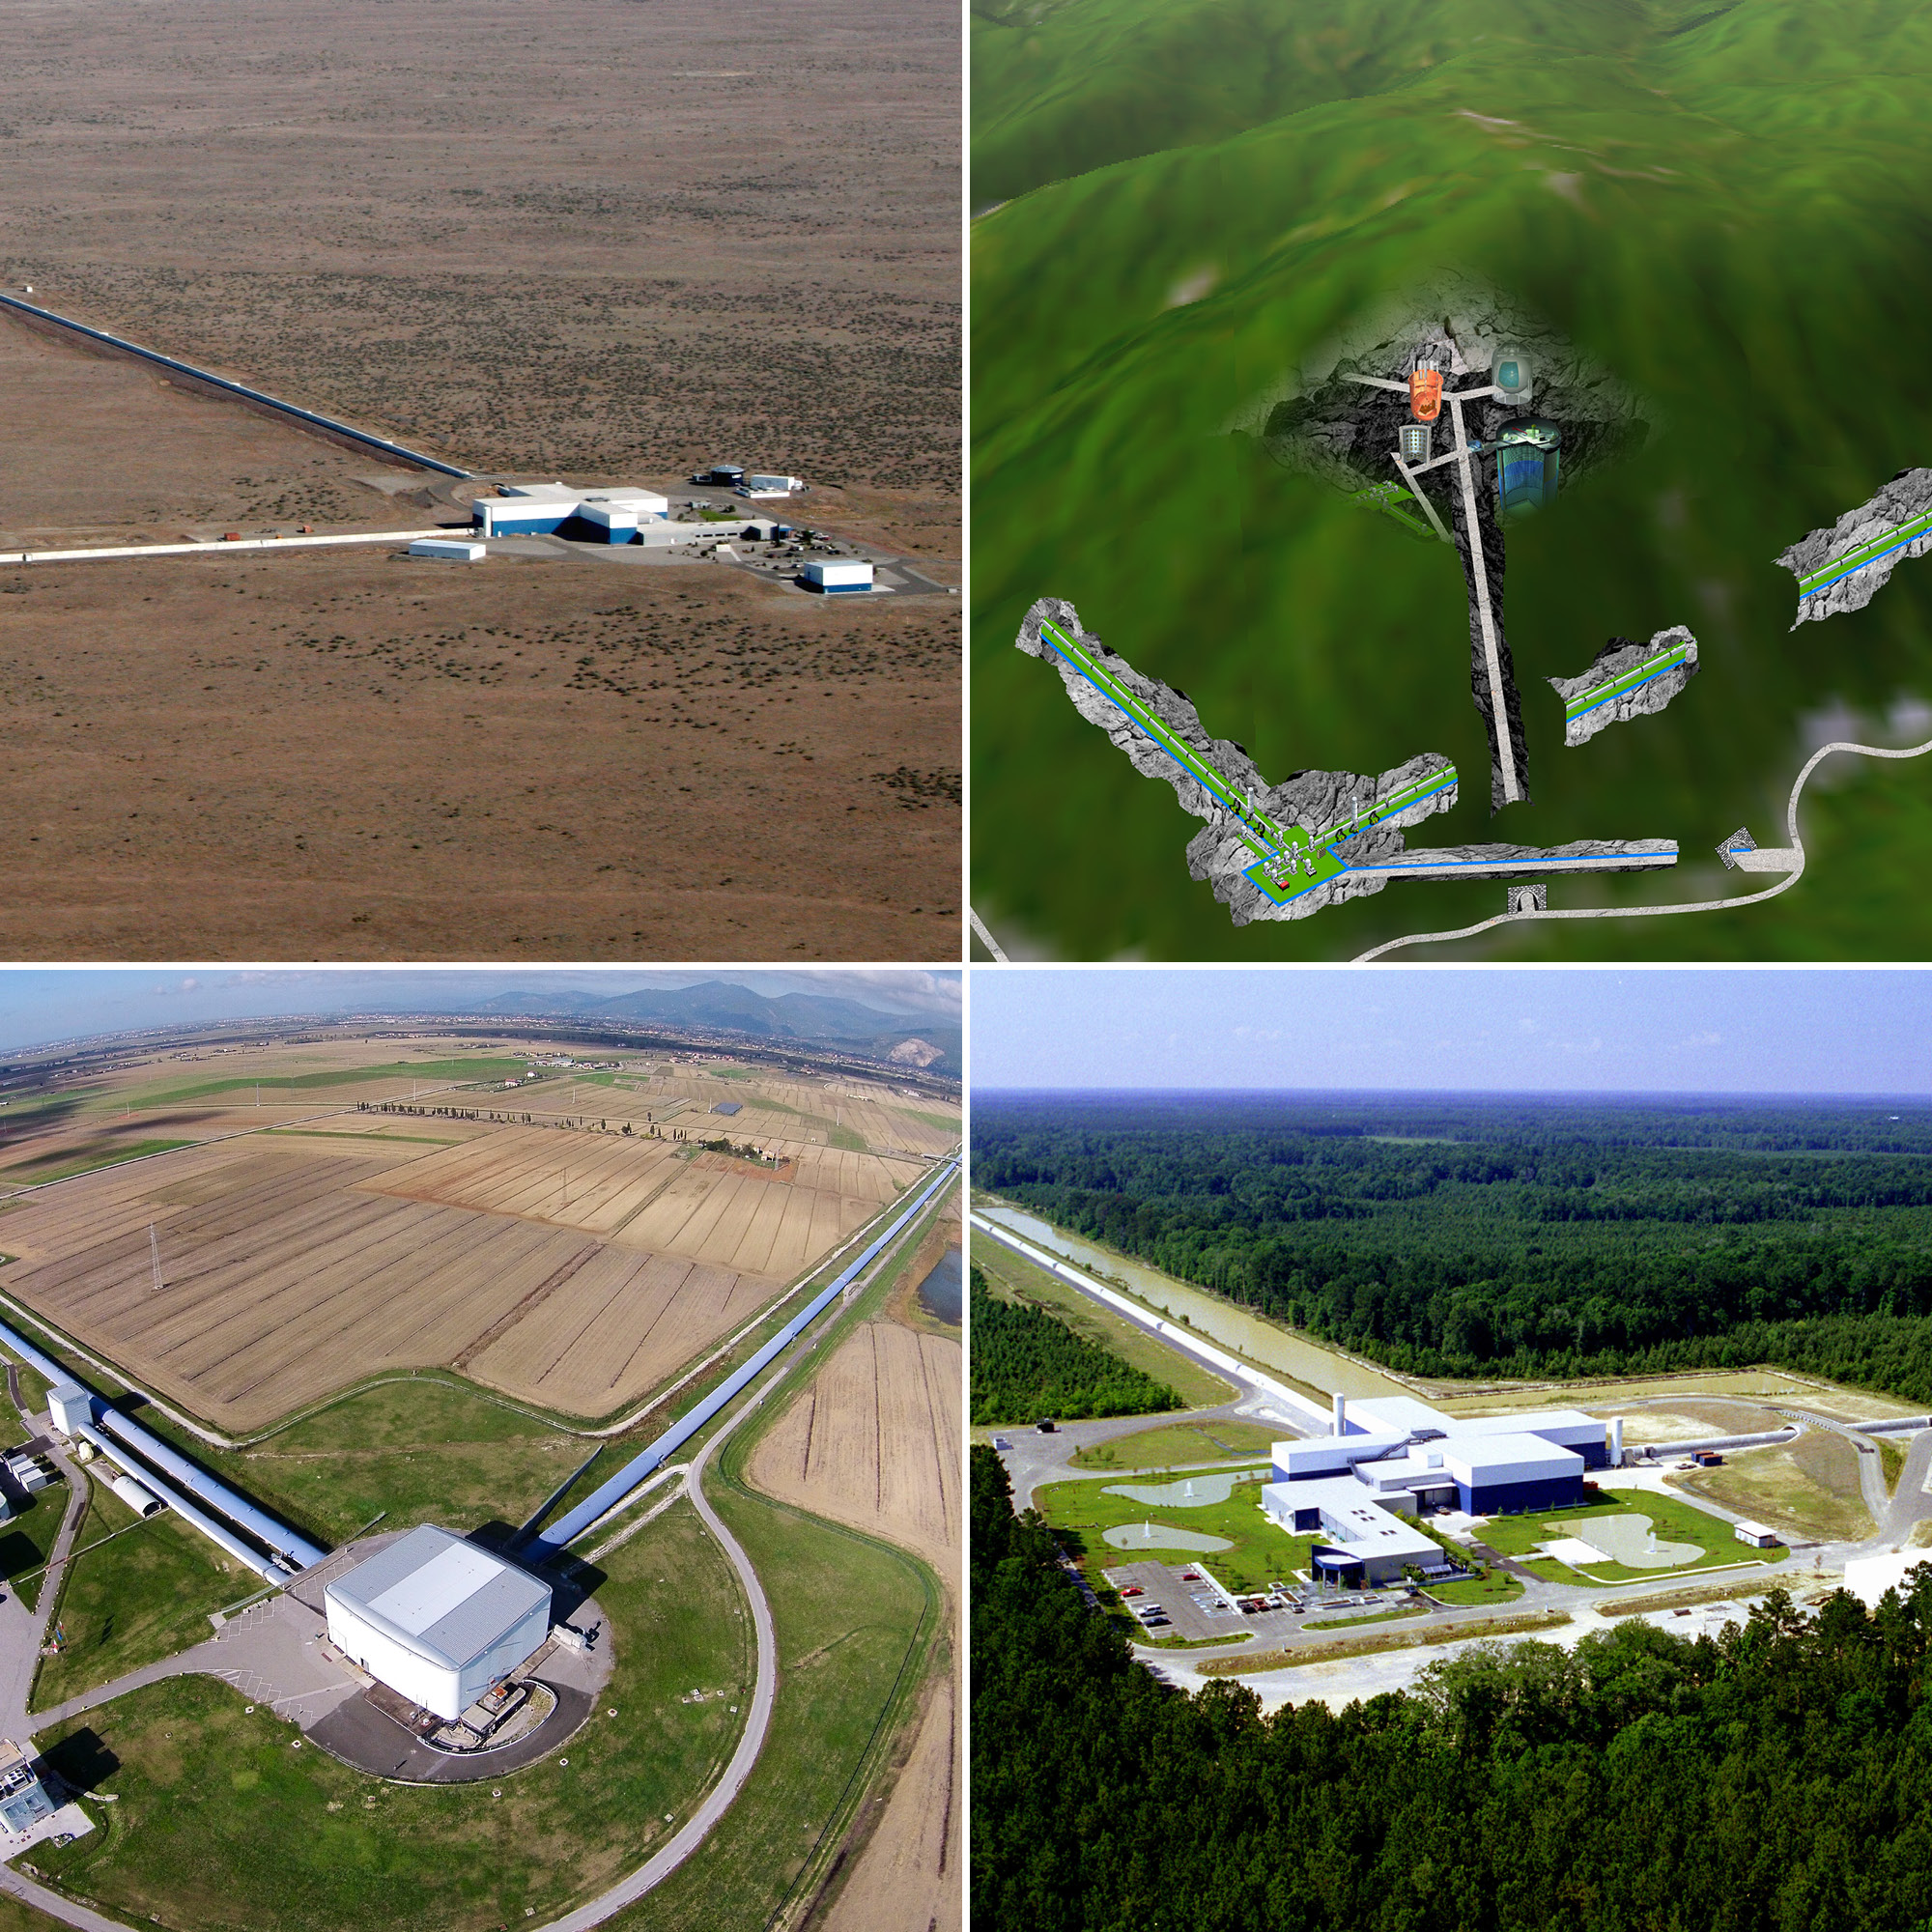 LIGO, Virgo, KAGRA facilities